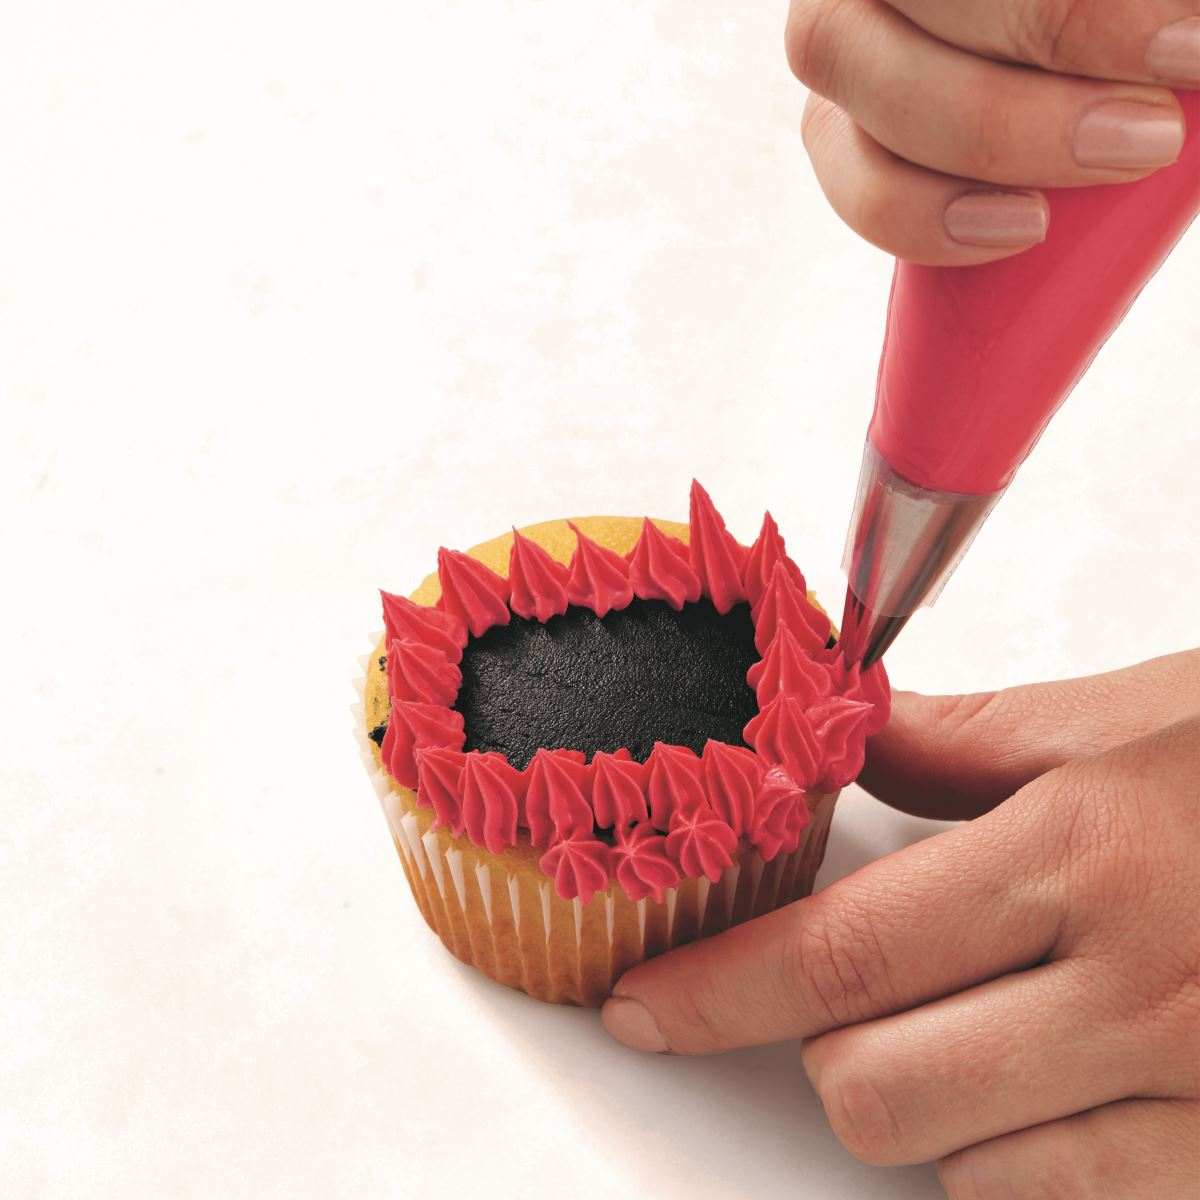 PINK ONE-EYED MONSTER CUPCAKE step 2